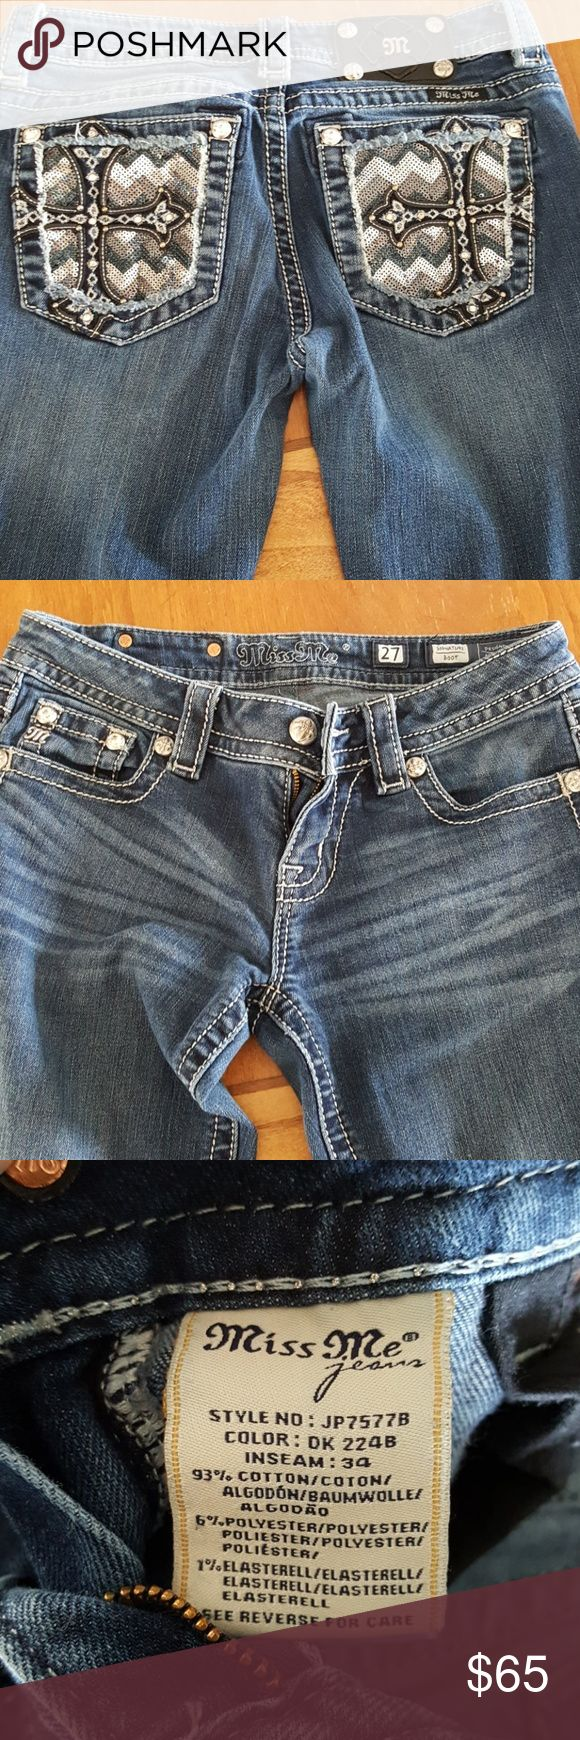 Miss me jeans size 27 inseam 34 Gently used Miss Mes size 27. No jewels or buttons missing. No stains. Miss Me Jeans Boot Cut